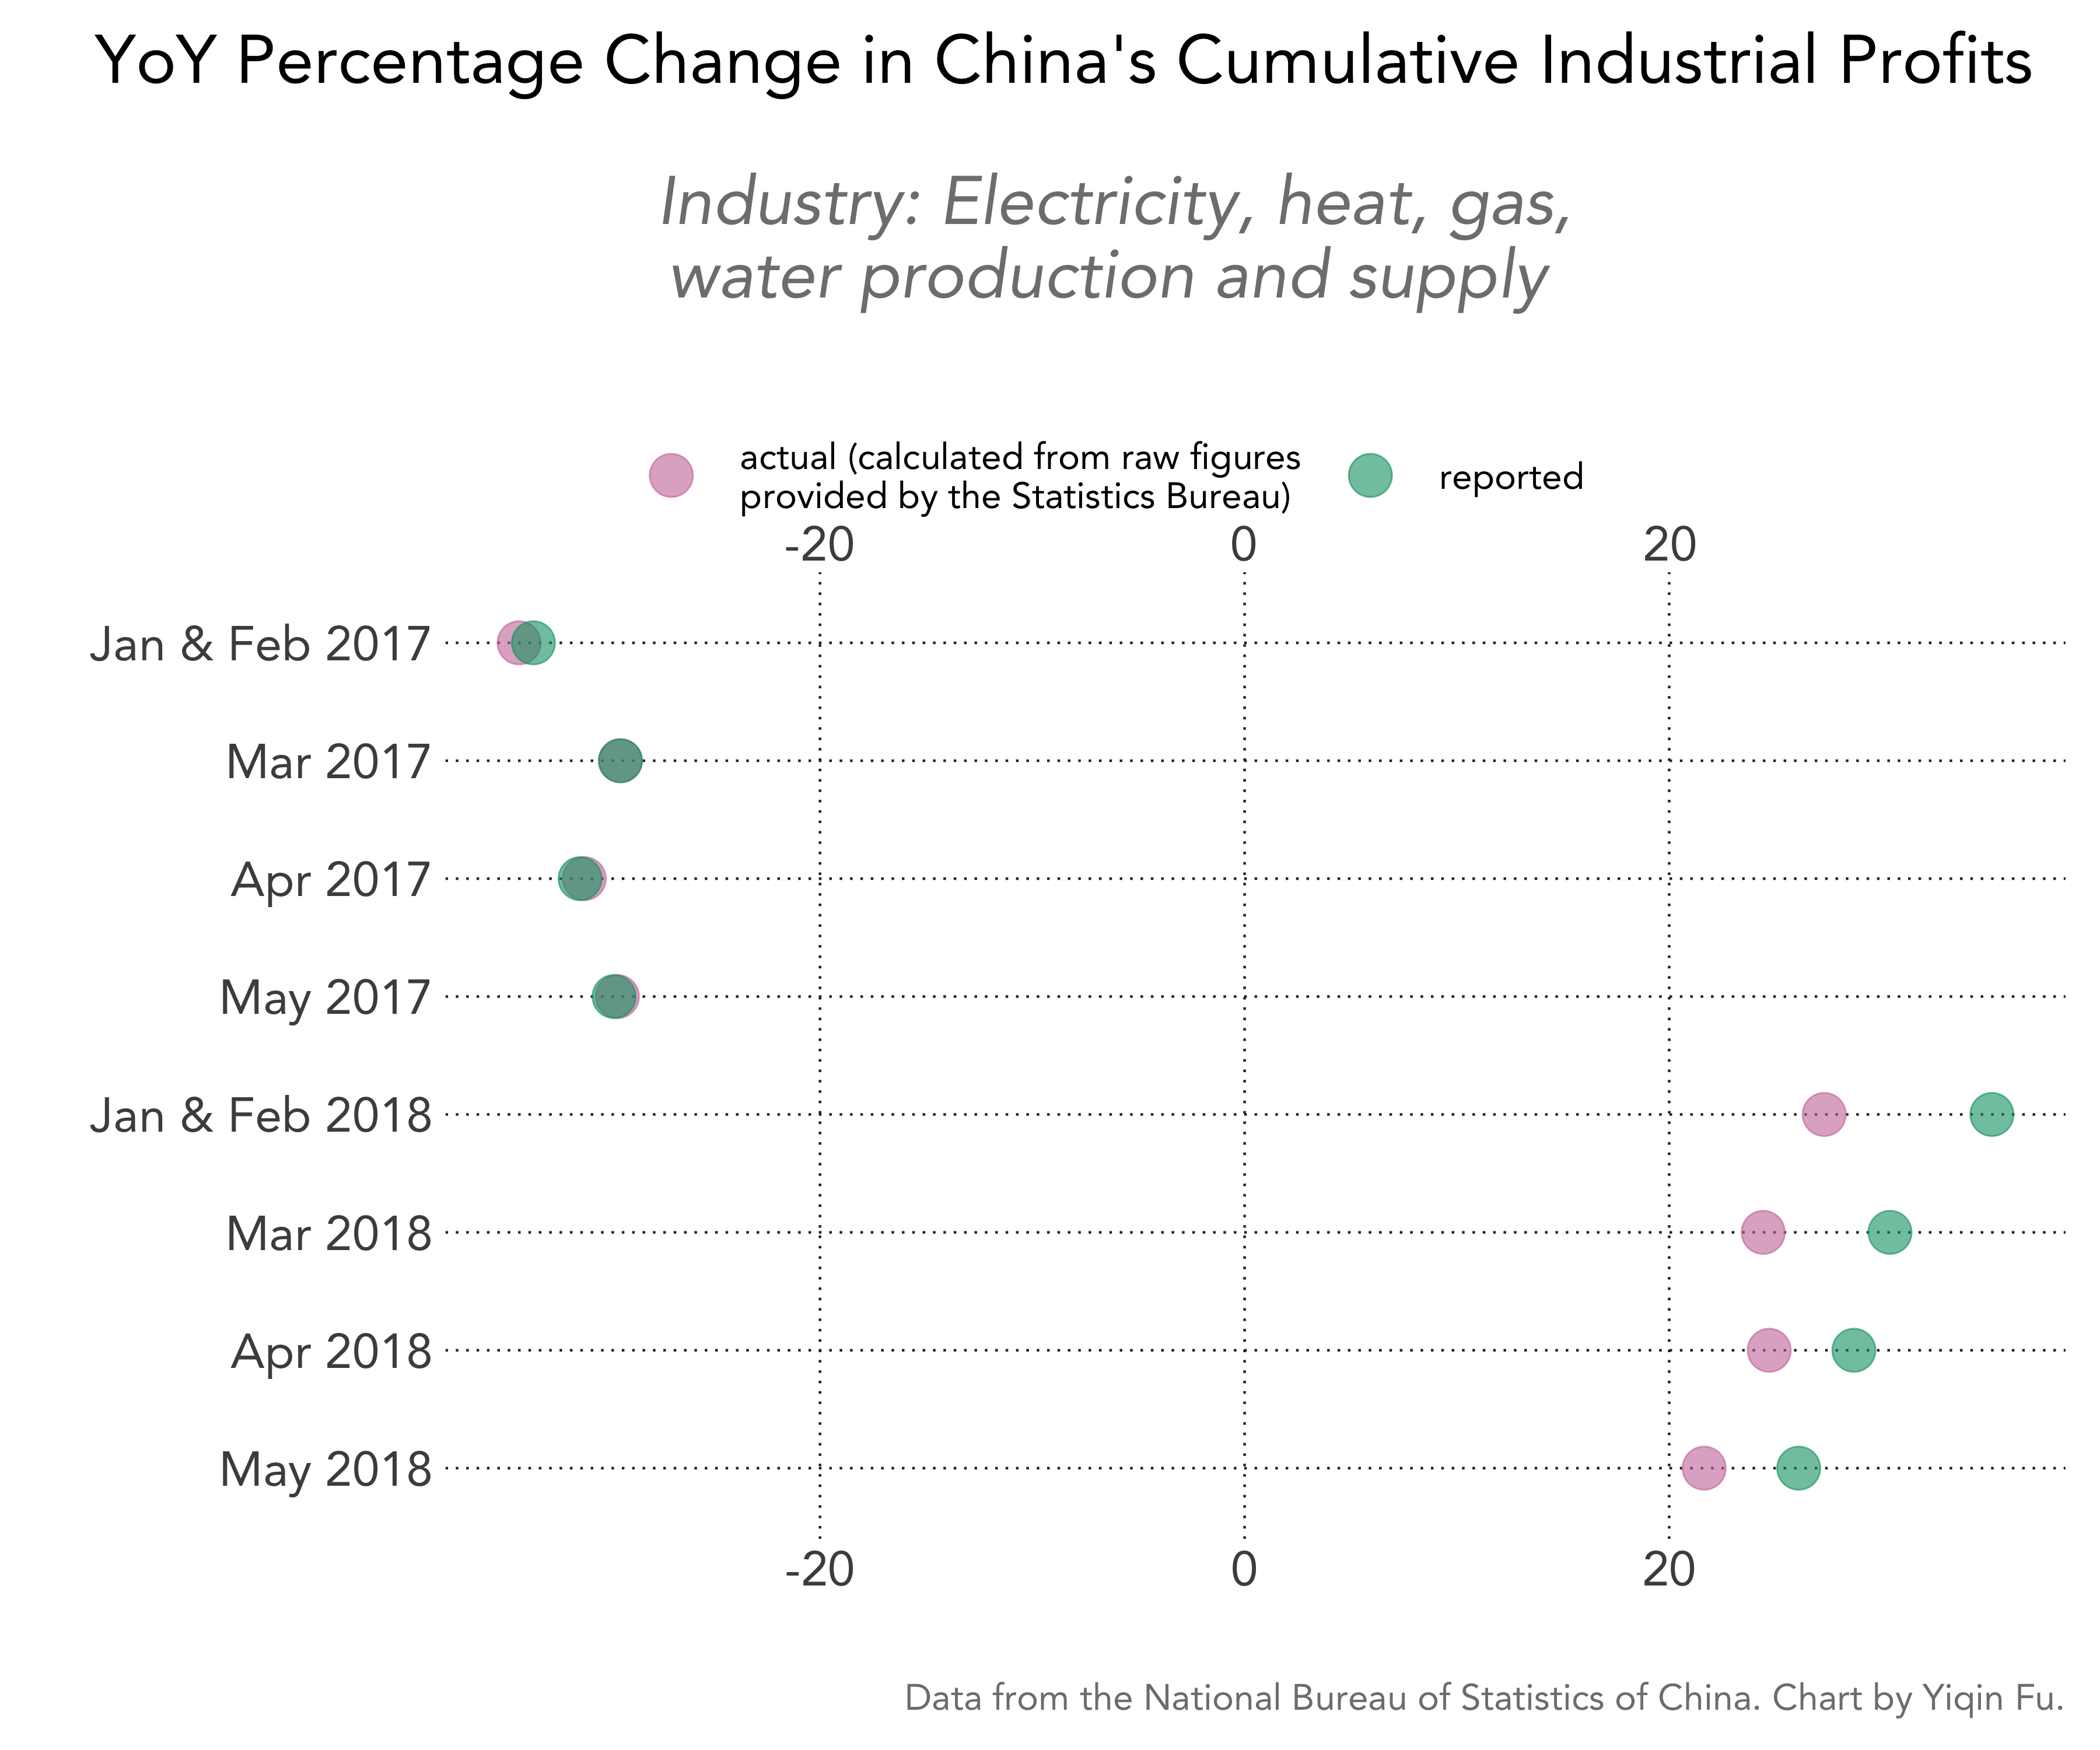 china-cumulative-industrial-profits-pct-change-actual-vs-reported-electric